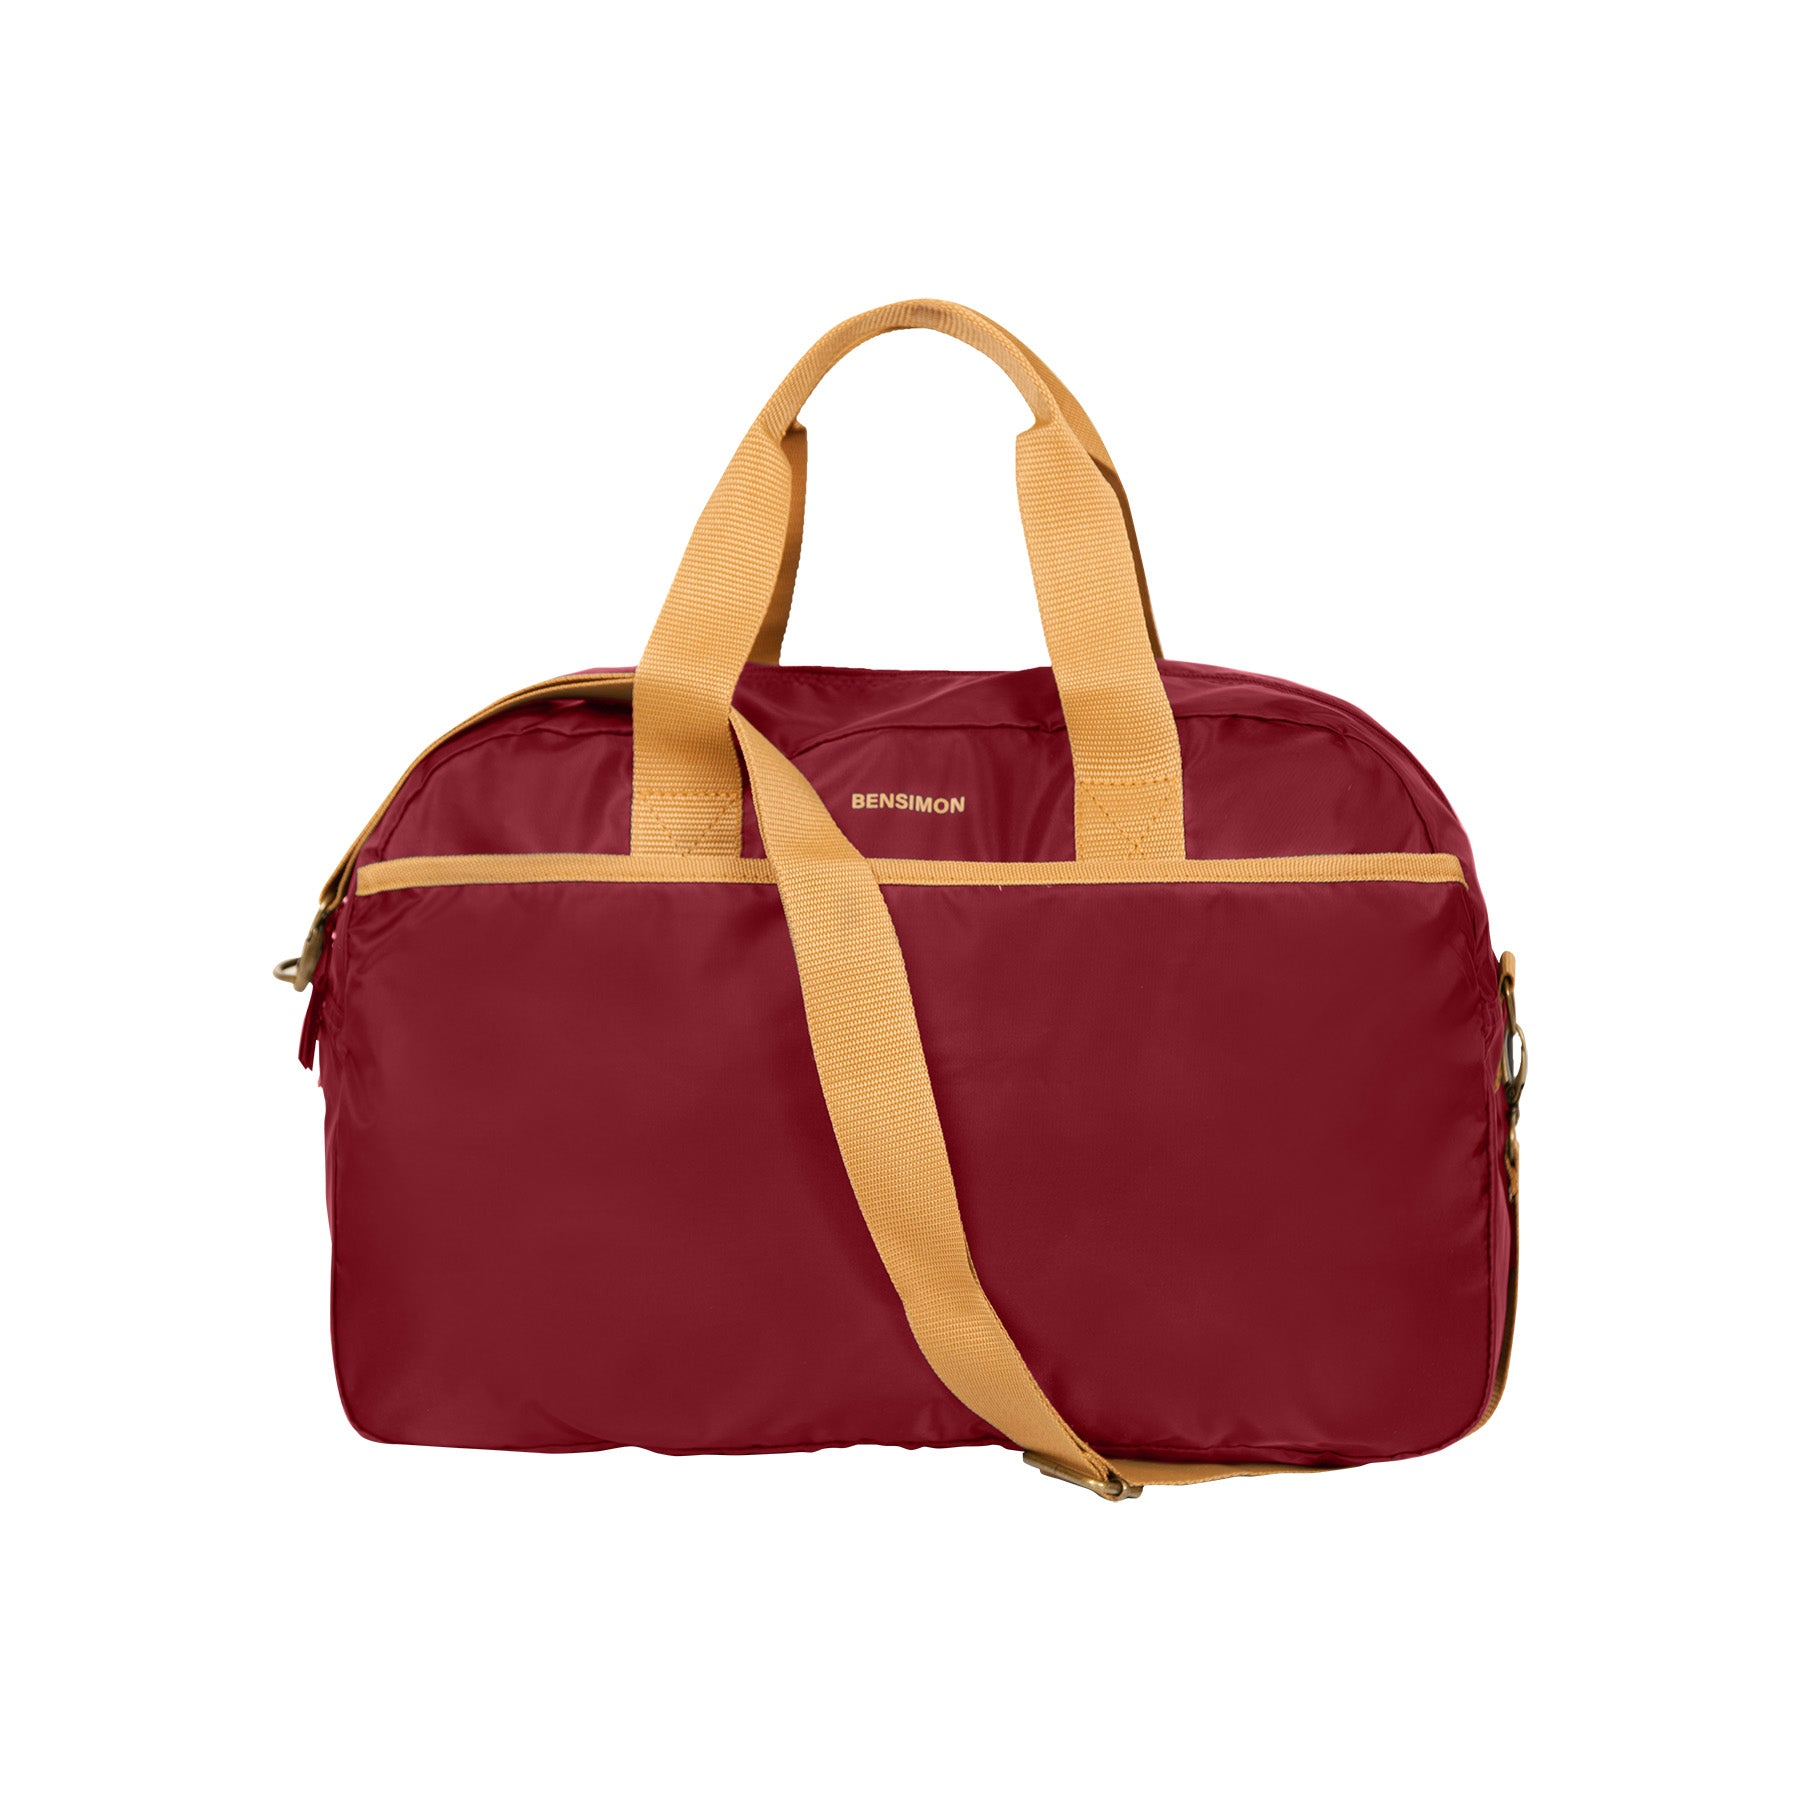 Sportbag - Lie de Vin